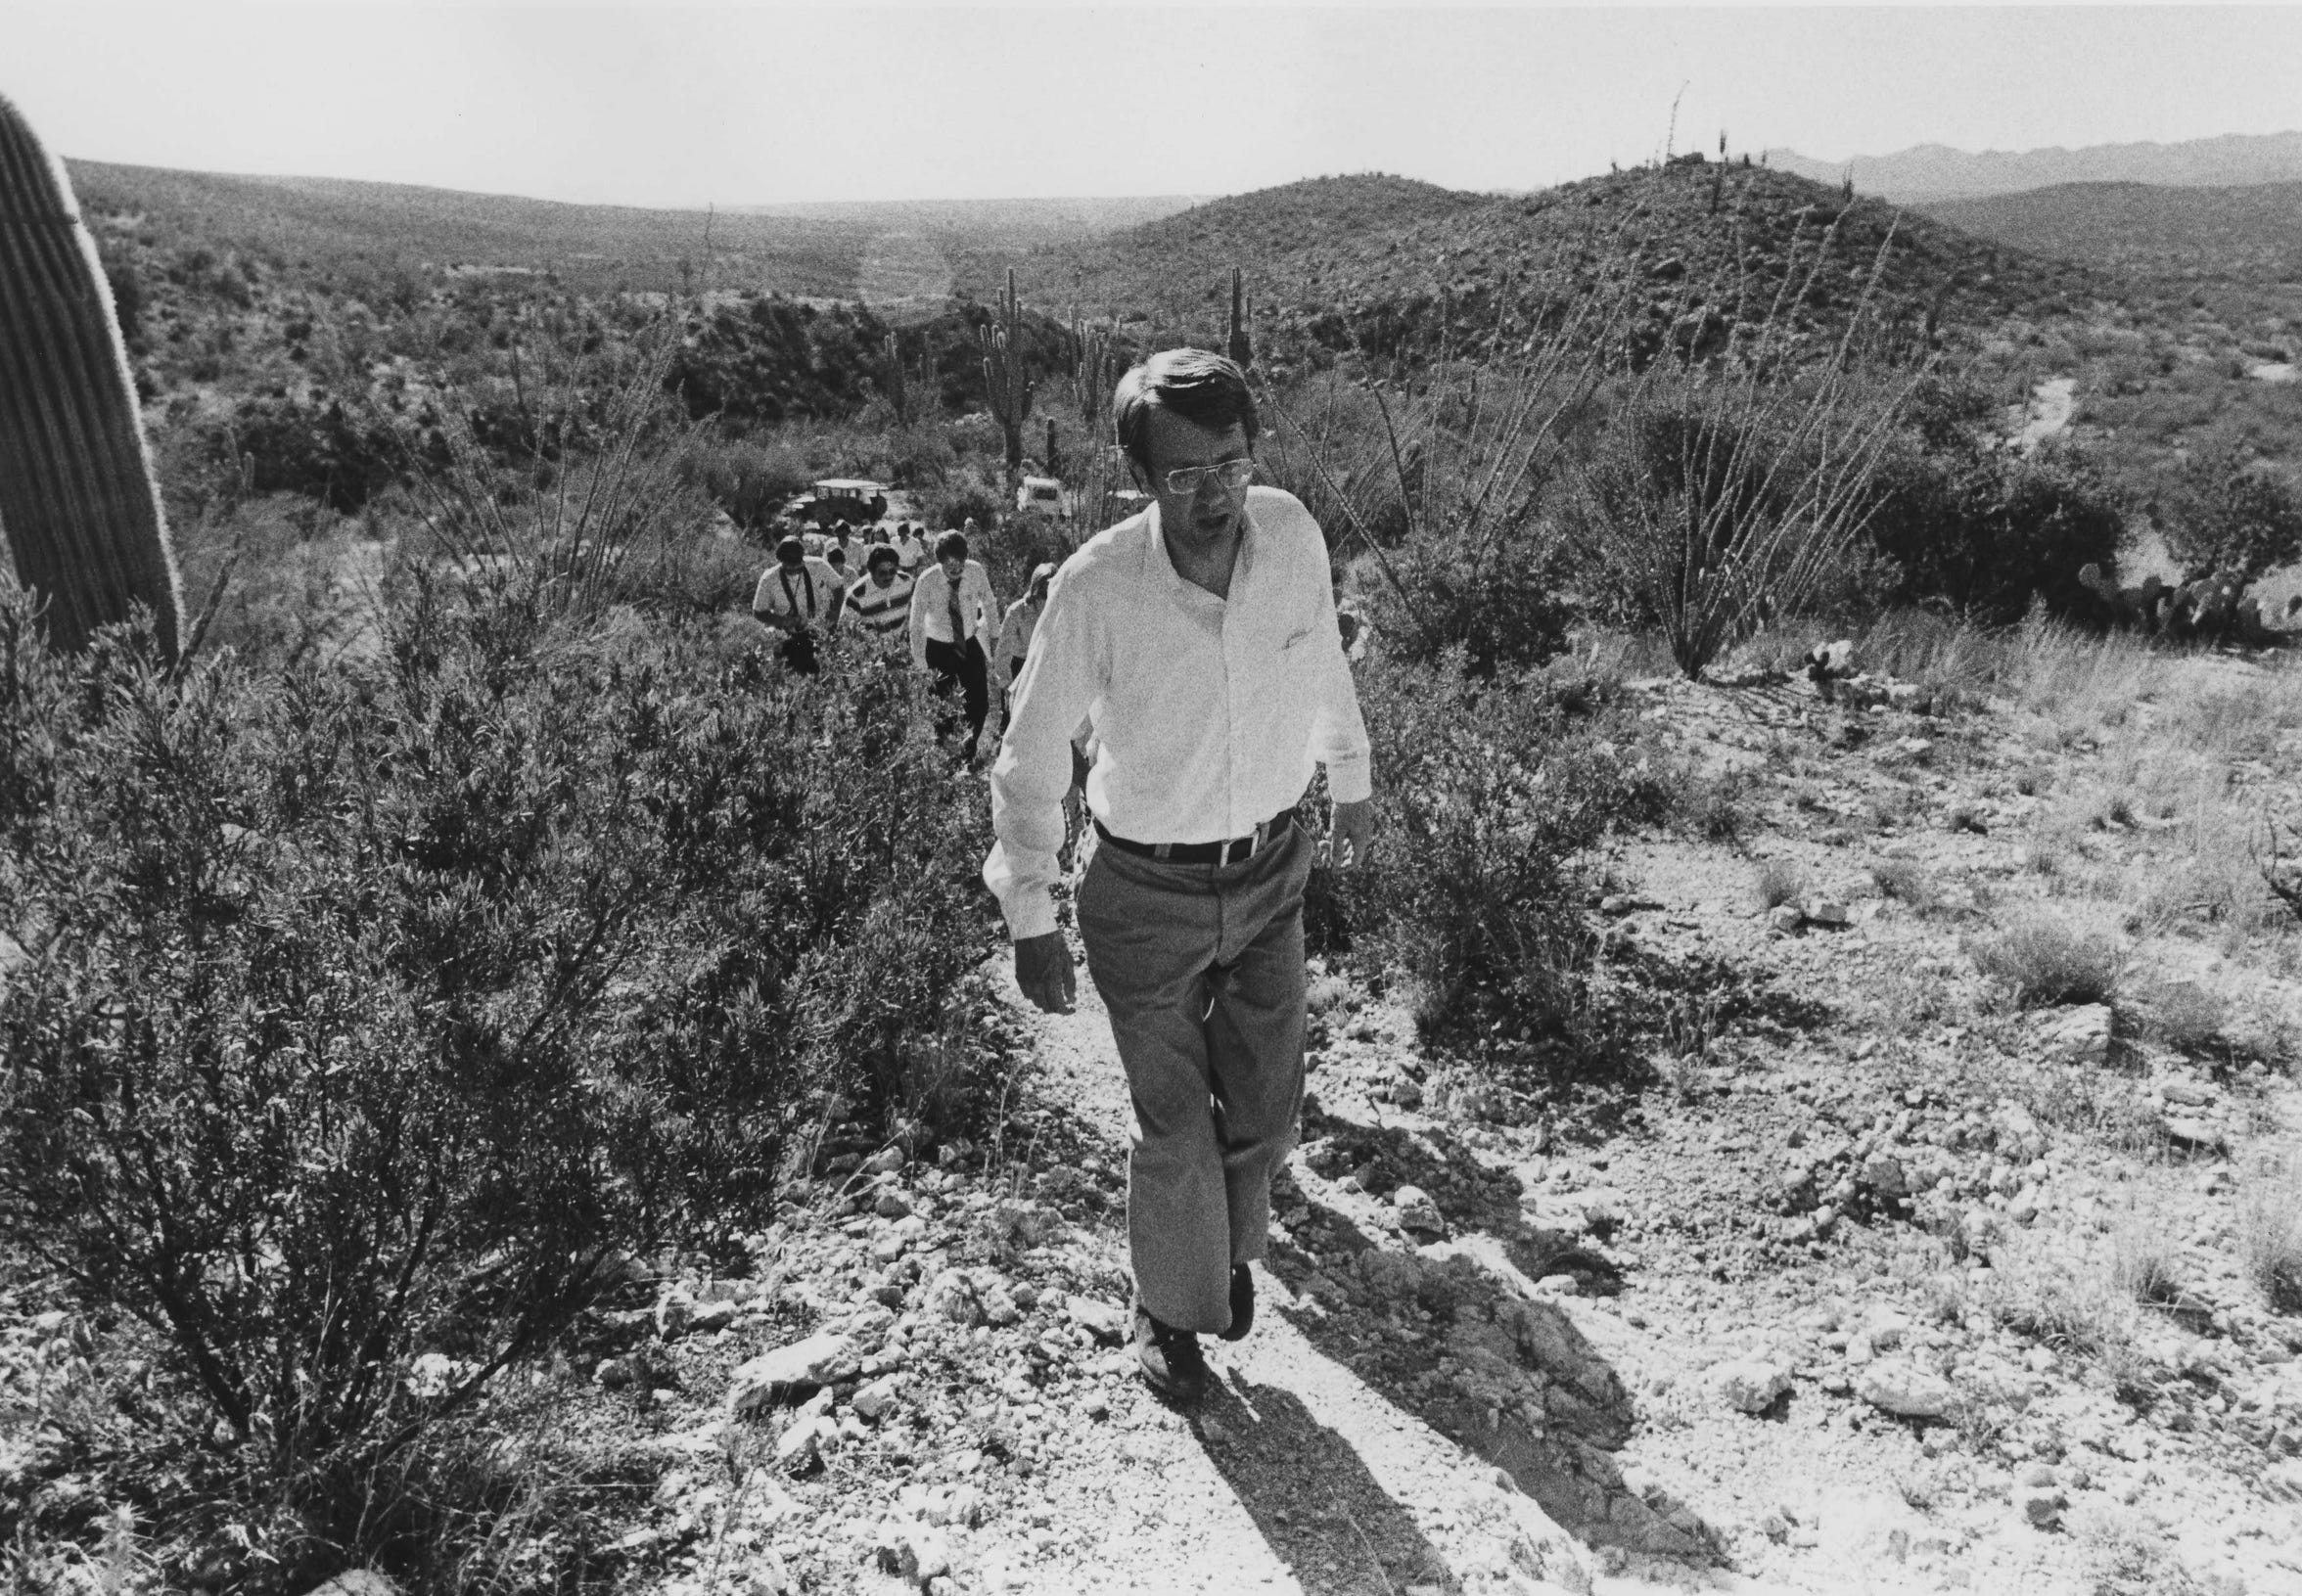 Gov. Bruce Babbitt hikes in in Catalina State Park in this file photo from March 17, 1978.